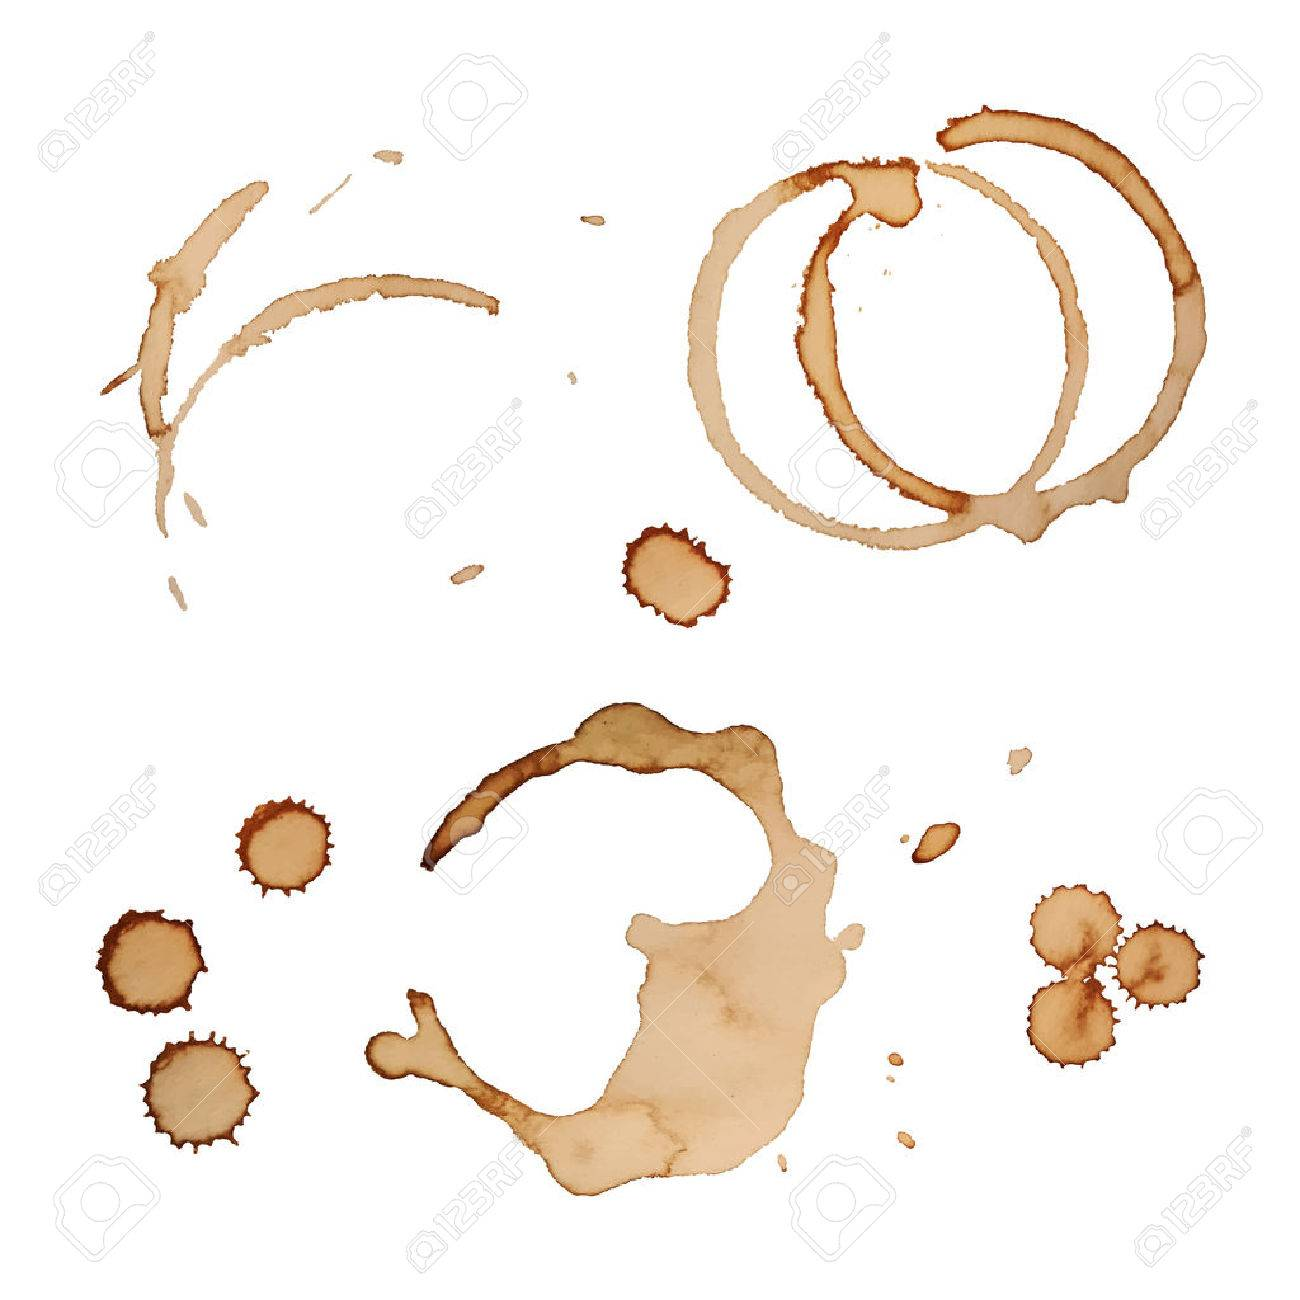 Vector Coffee Stain Rings Set Isolated On White Background for Grunge Design - 35378186